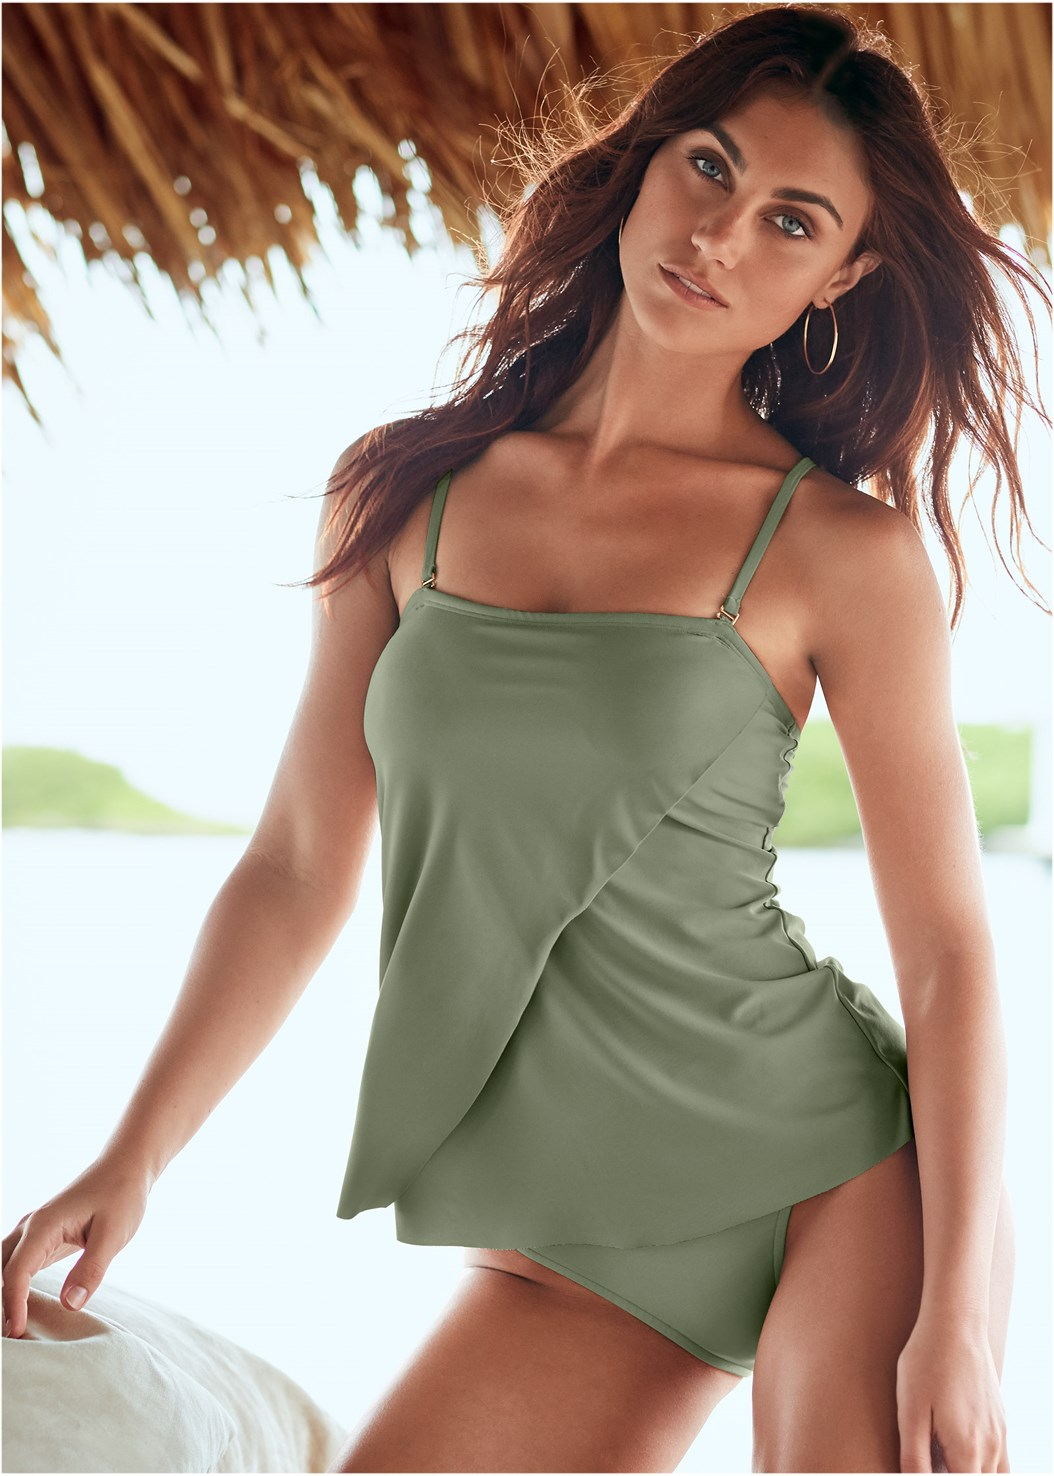 Classic Bandeau Tankini,Mid Rise Full Cut Bottom,Skirted Swim Bikini Bottom,Sash Tie Maxi Cover-Up